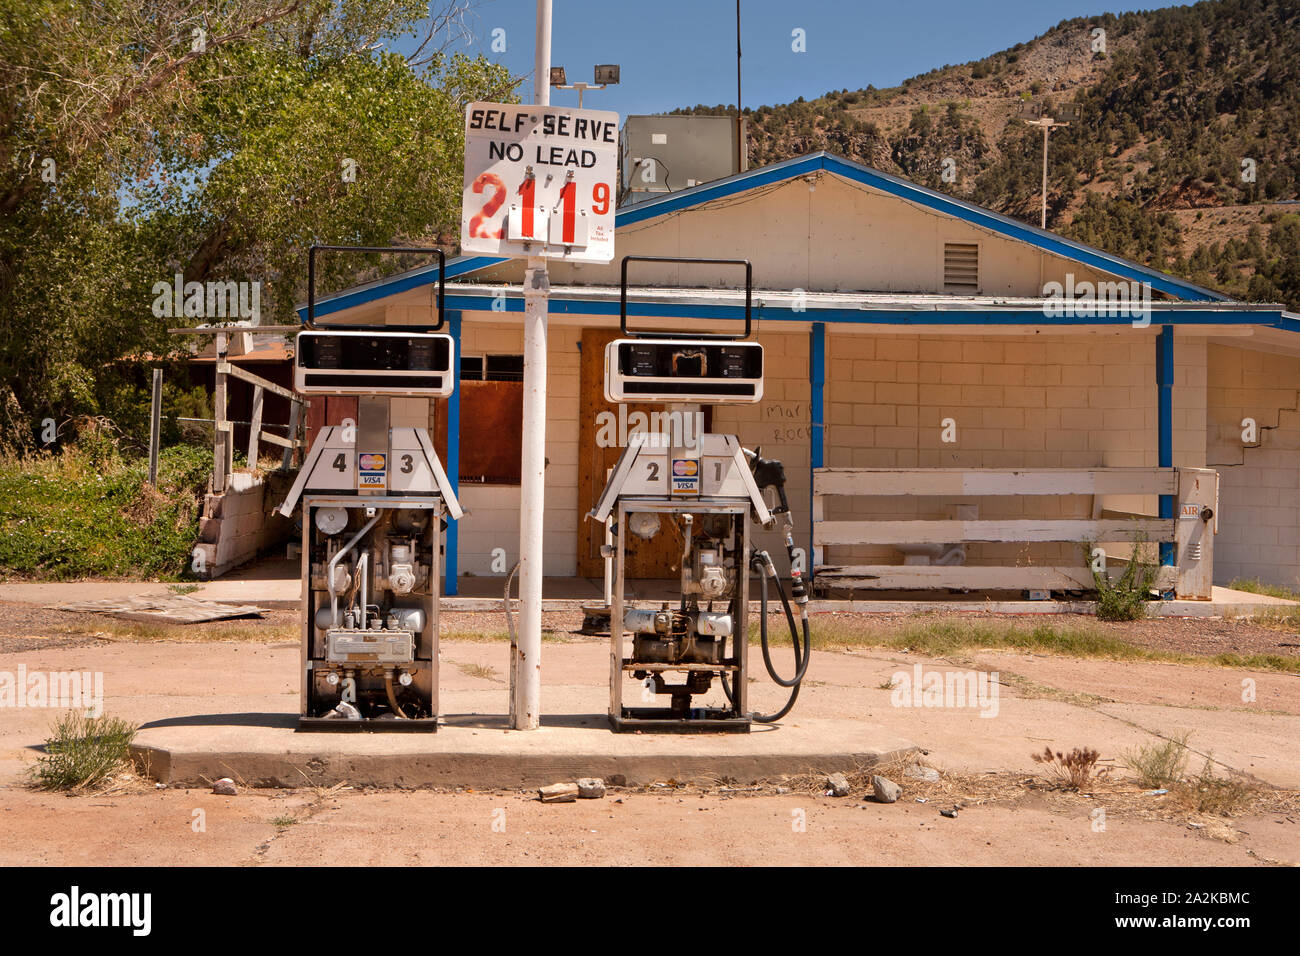 An Abandoned Fuel Station In Arizona Stock Photo Alamy